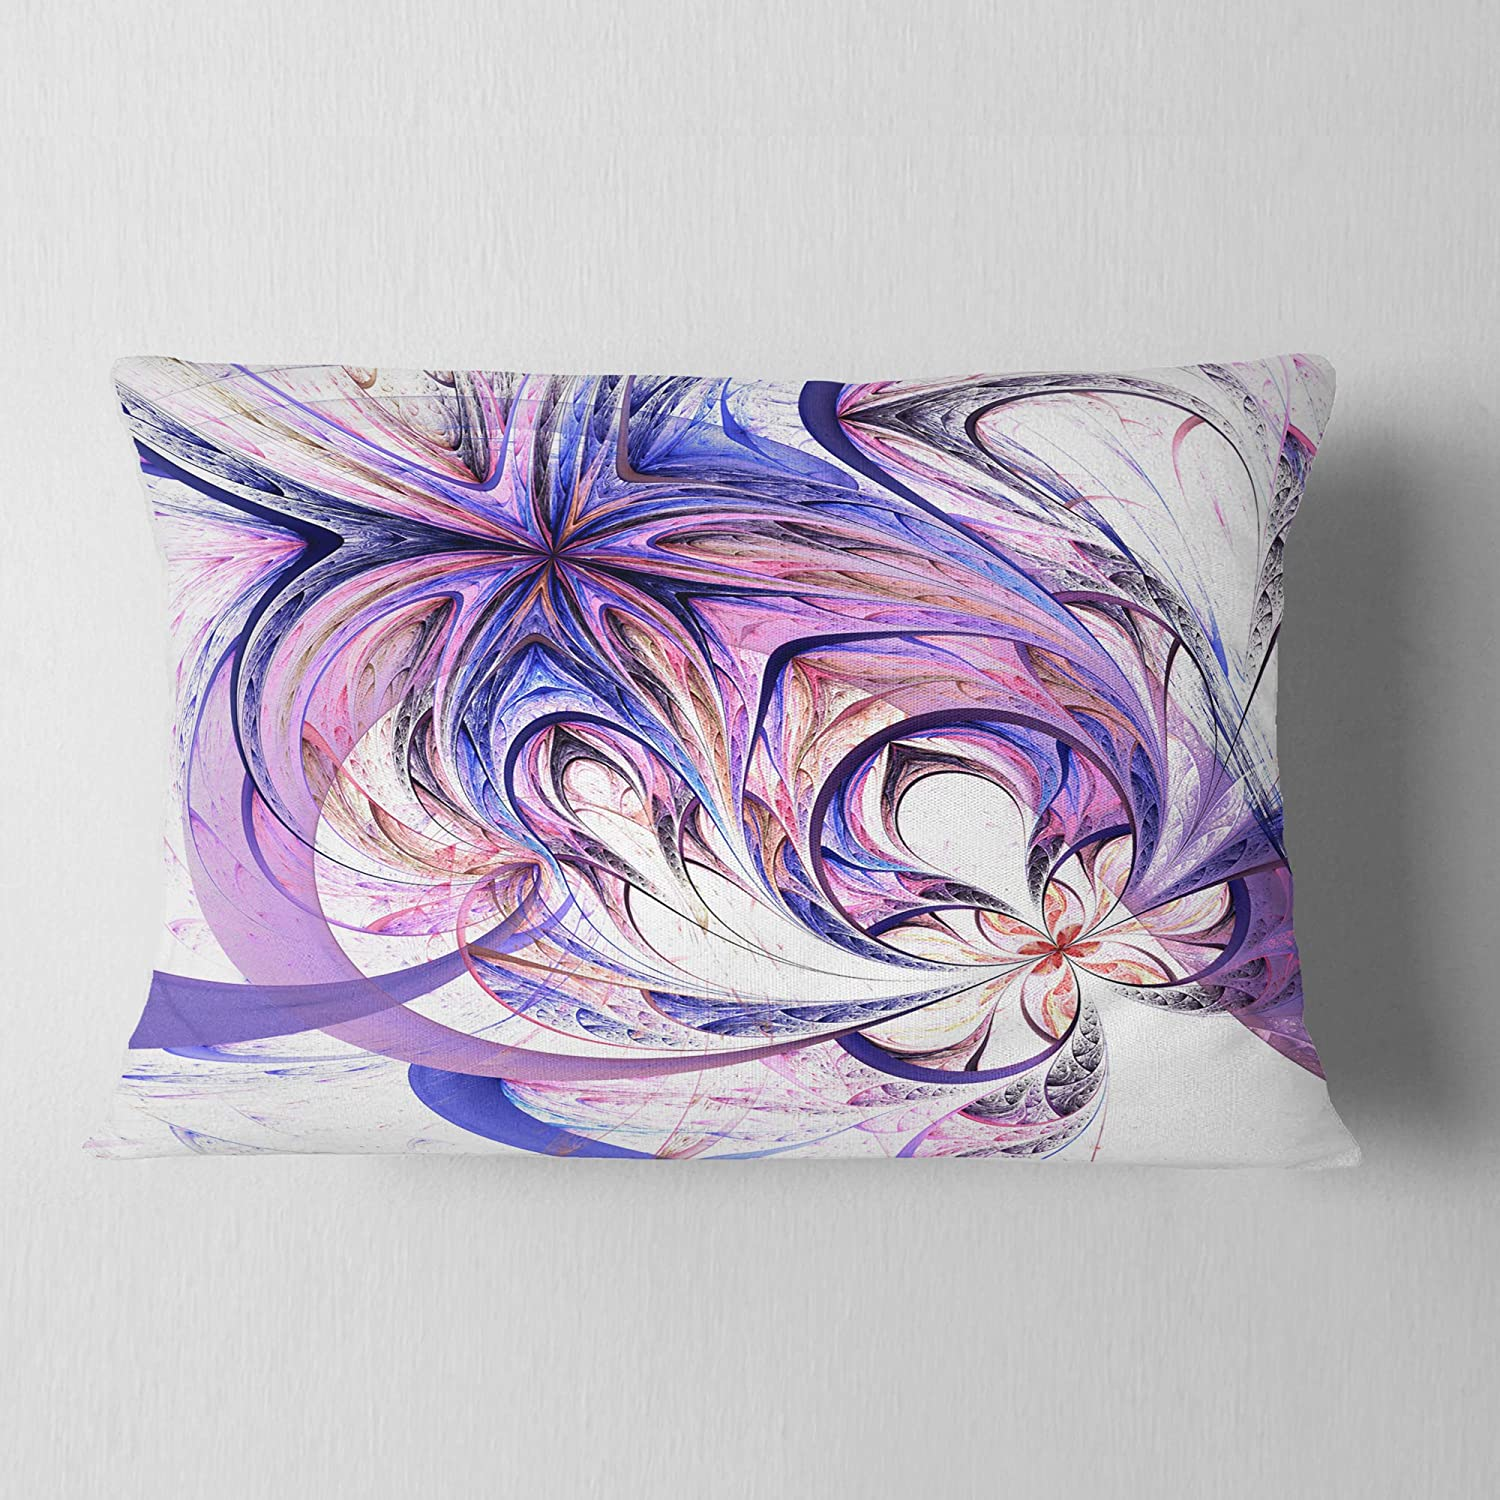 Designart Cu7860 12 20 Blue And Pink Flower Pattern Floral Throw Pillow 12 X 20 Decorative Pillows Inserts Covers Throw Pillow Covers